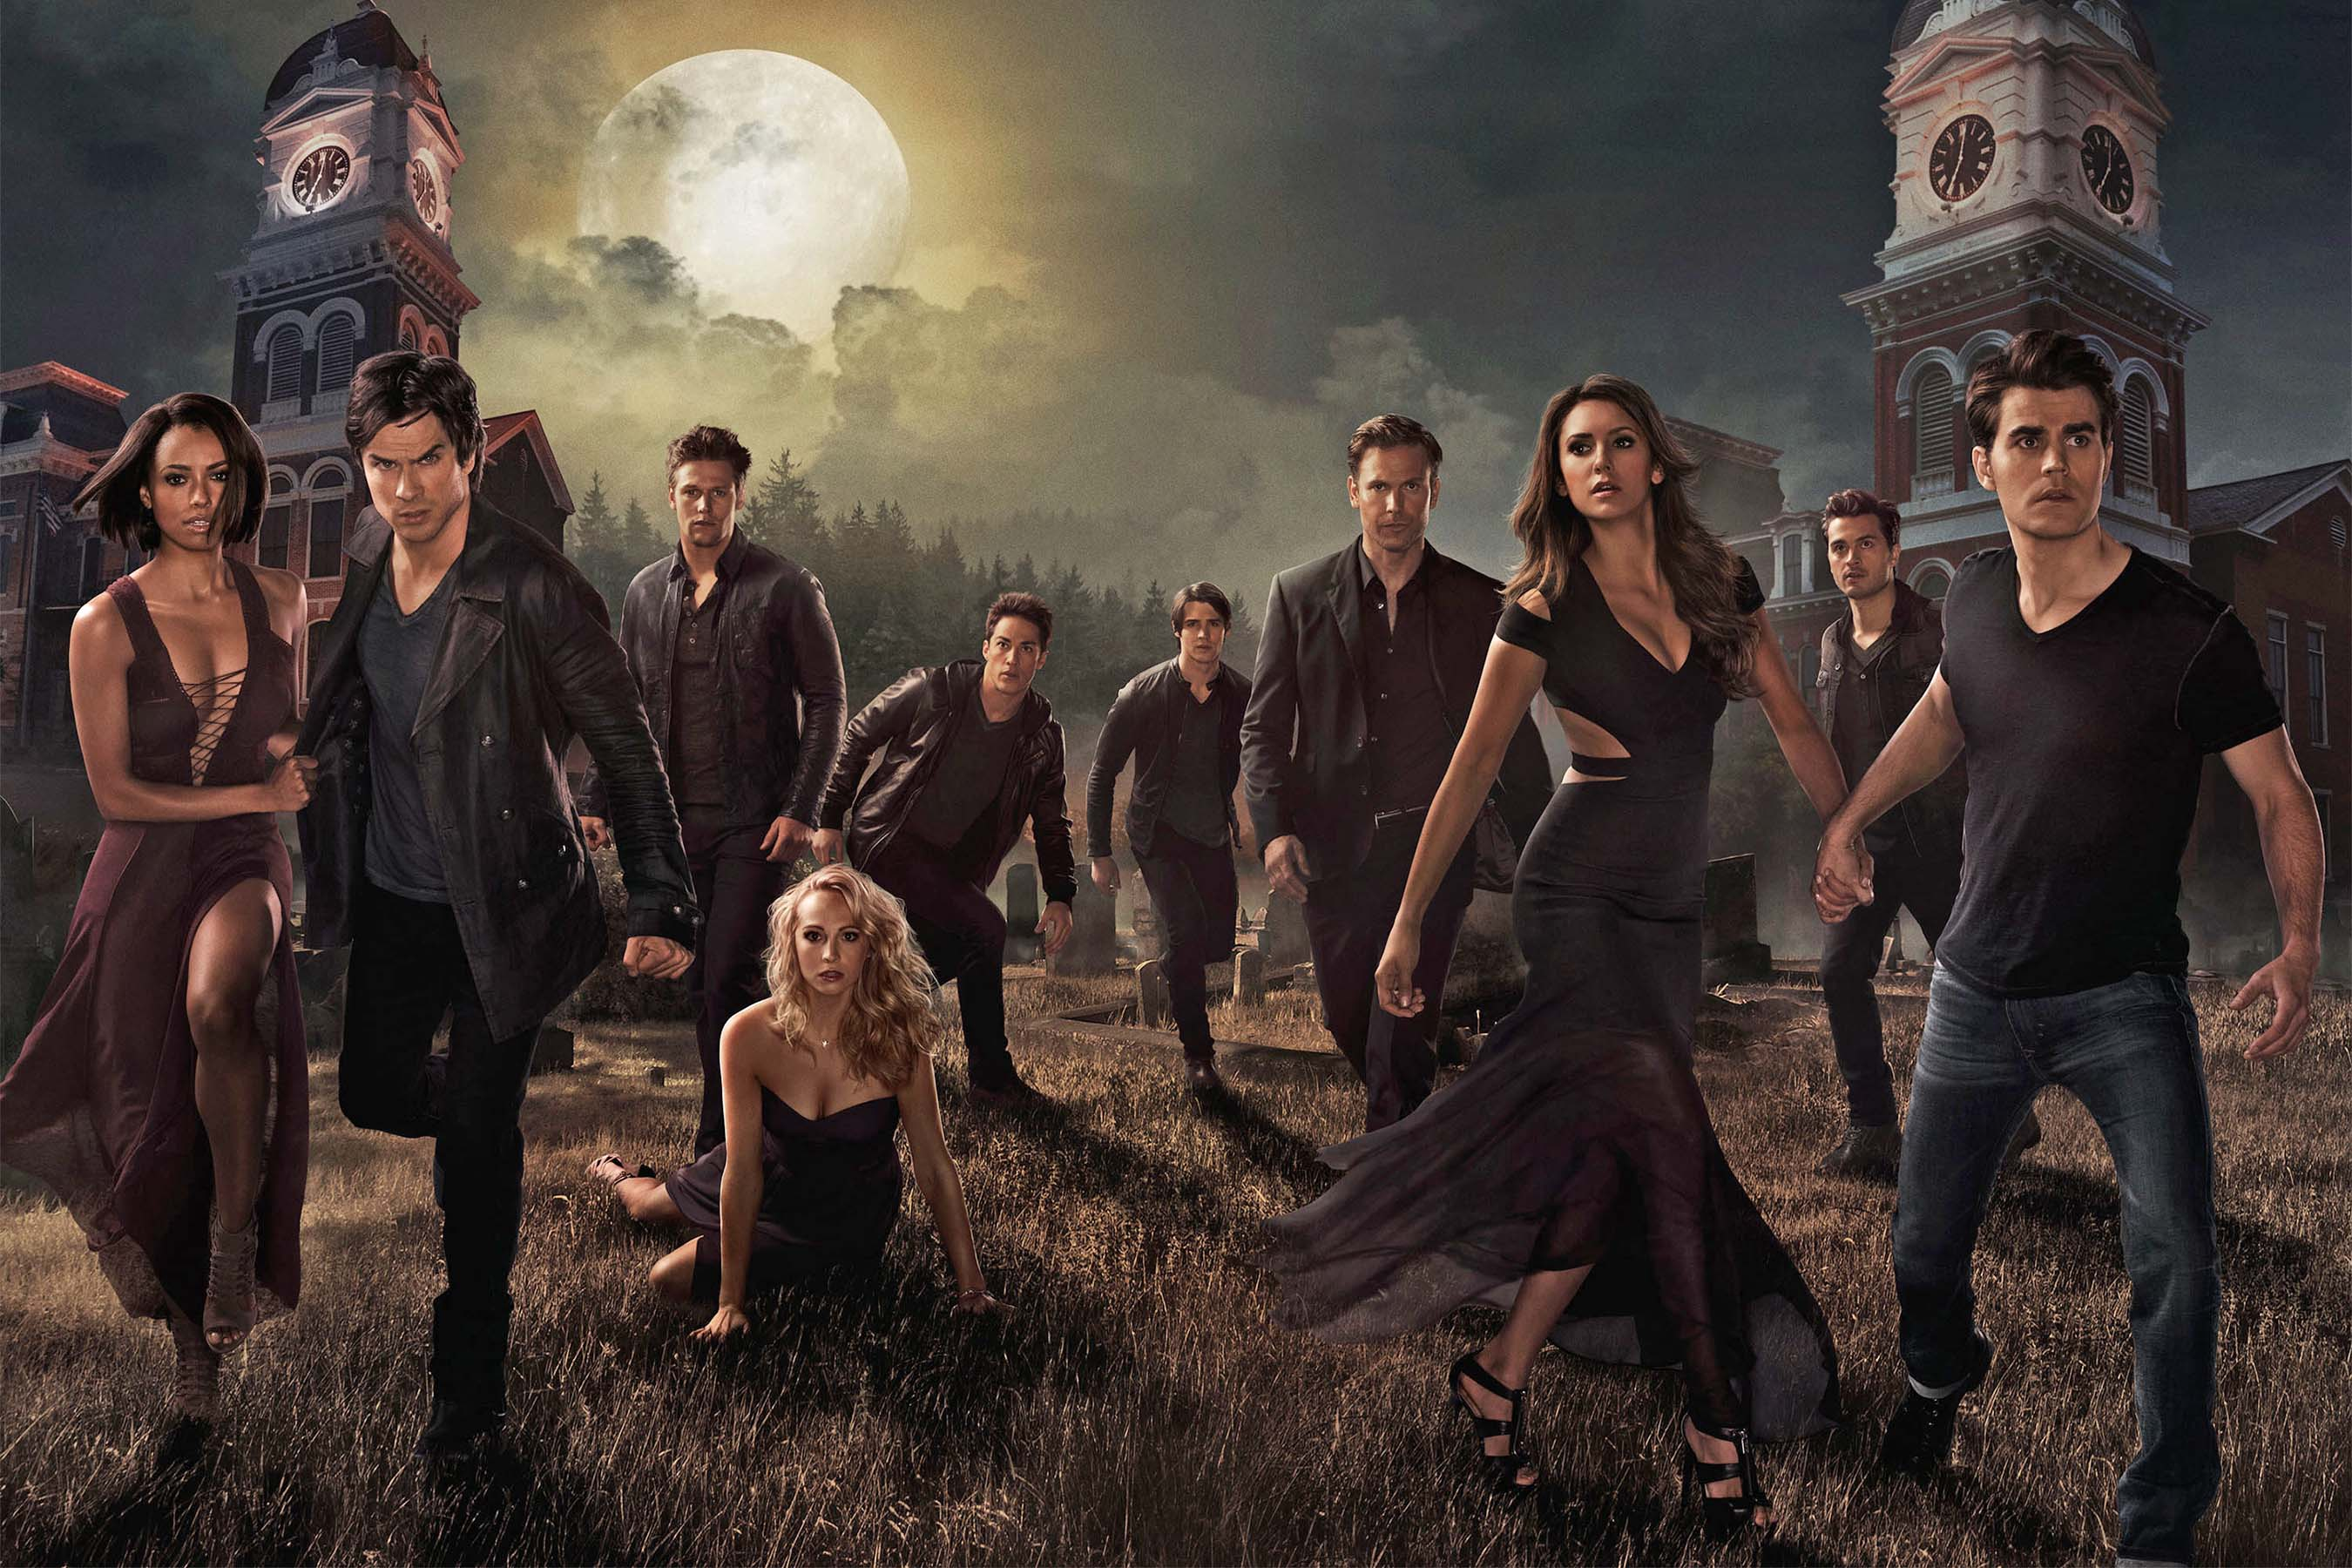 This shows the star cast of the famous series, the Vampire Diaries.